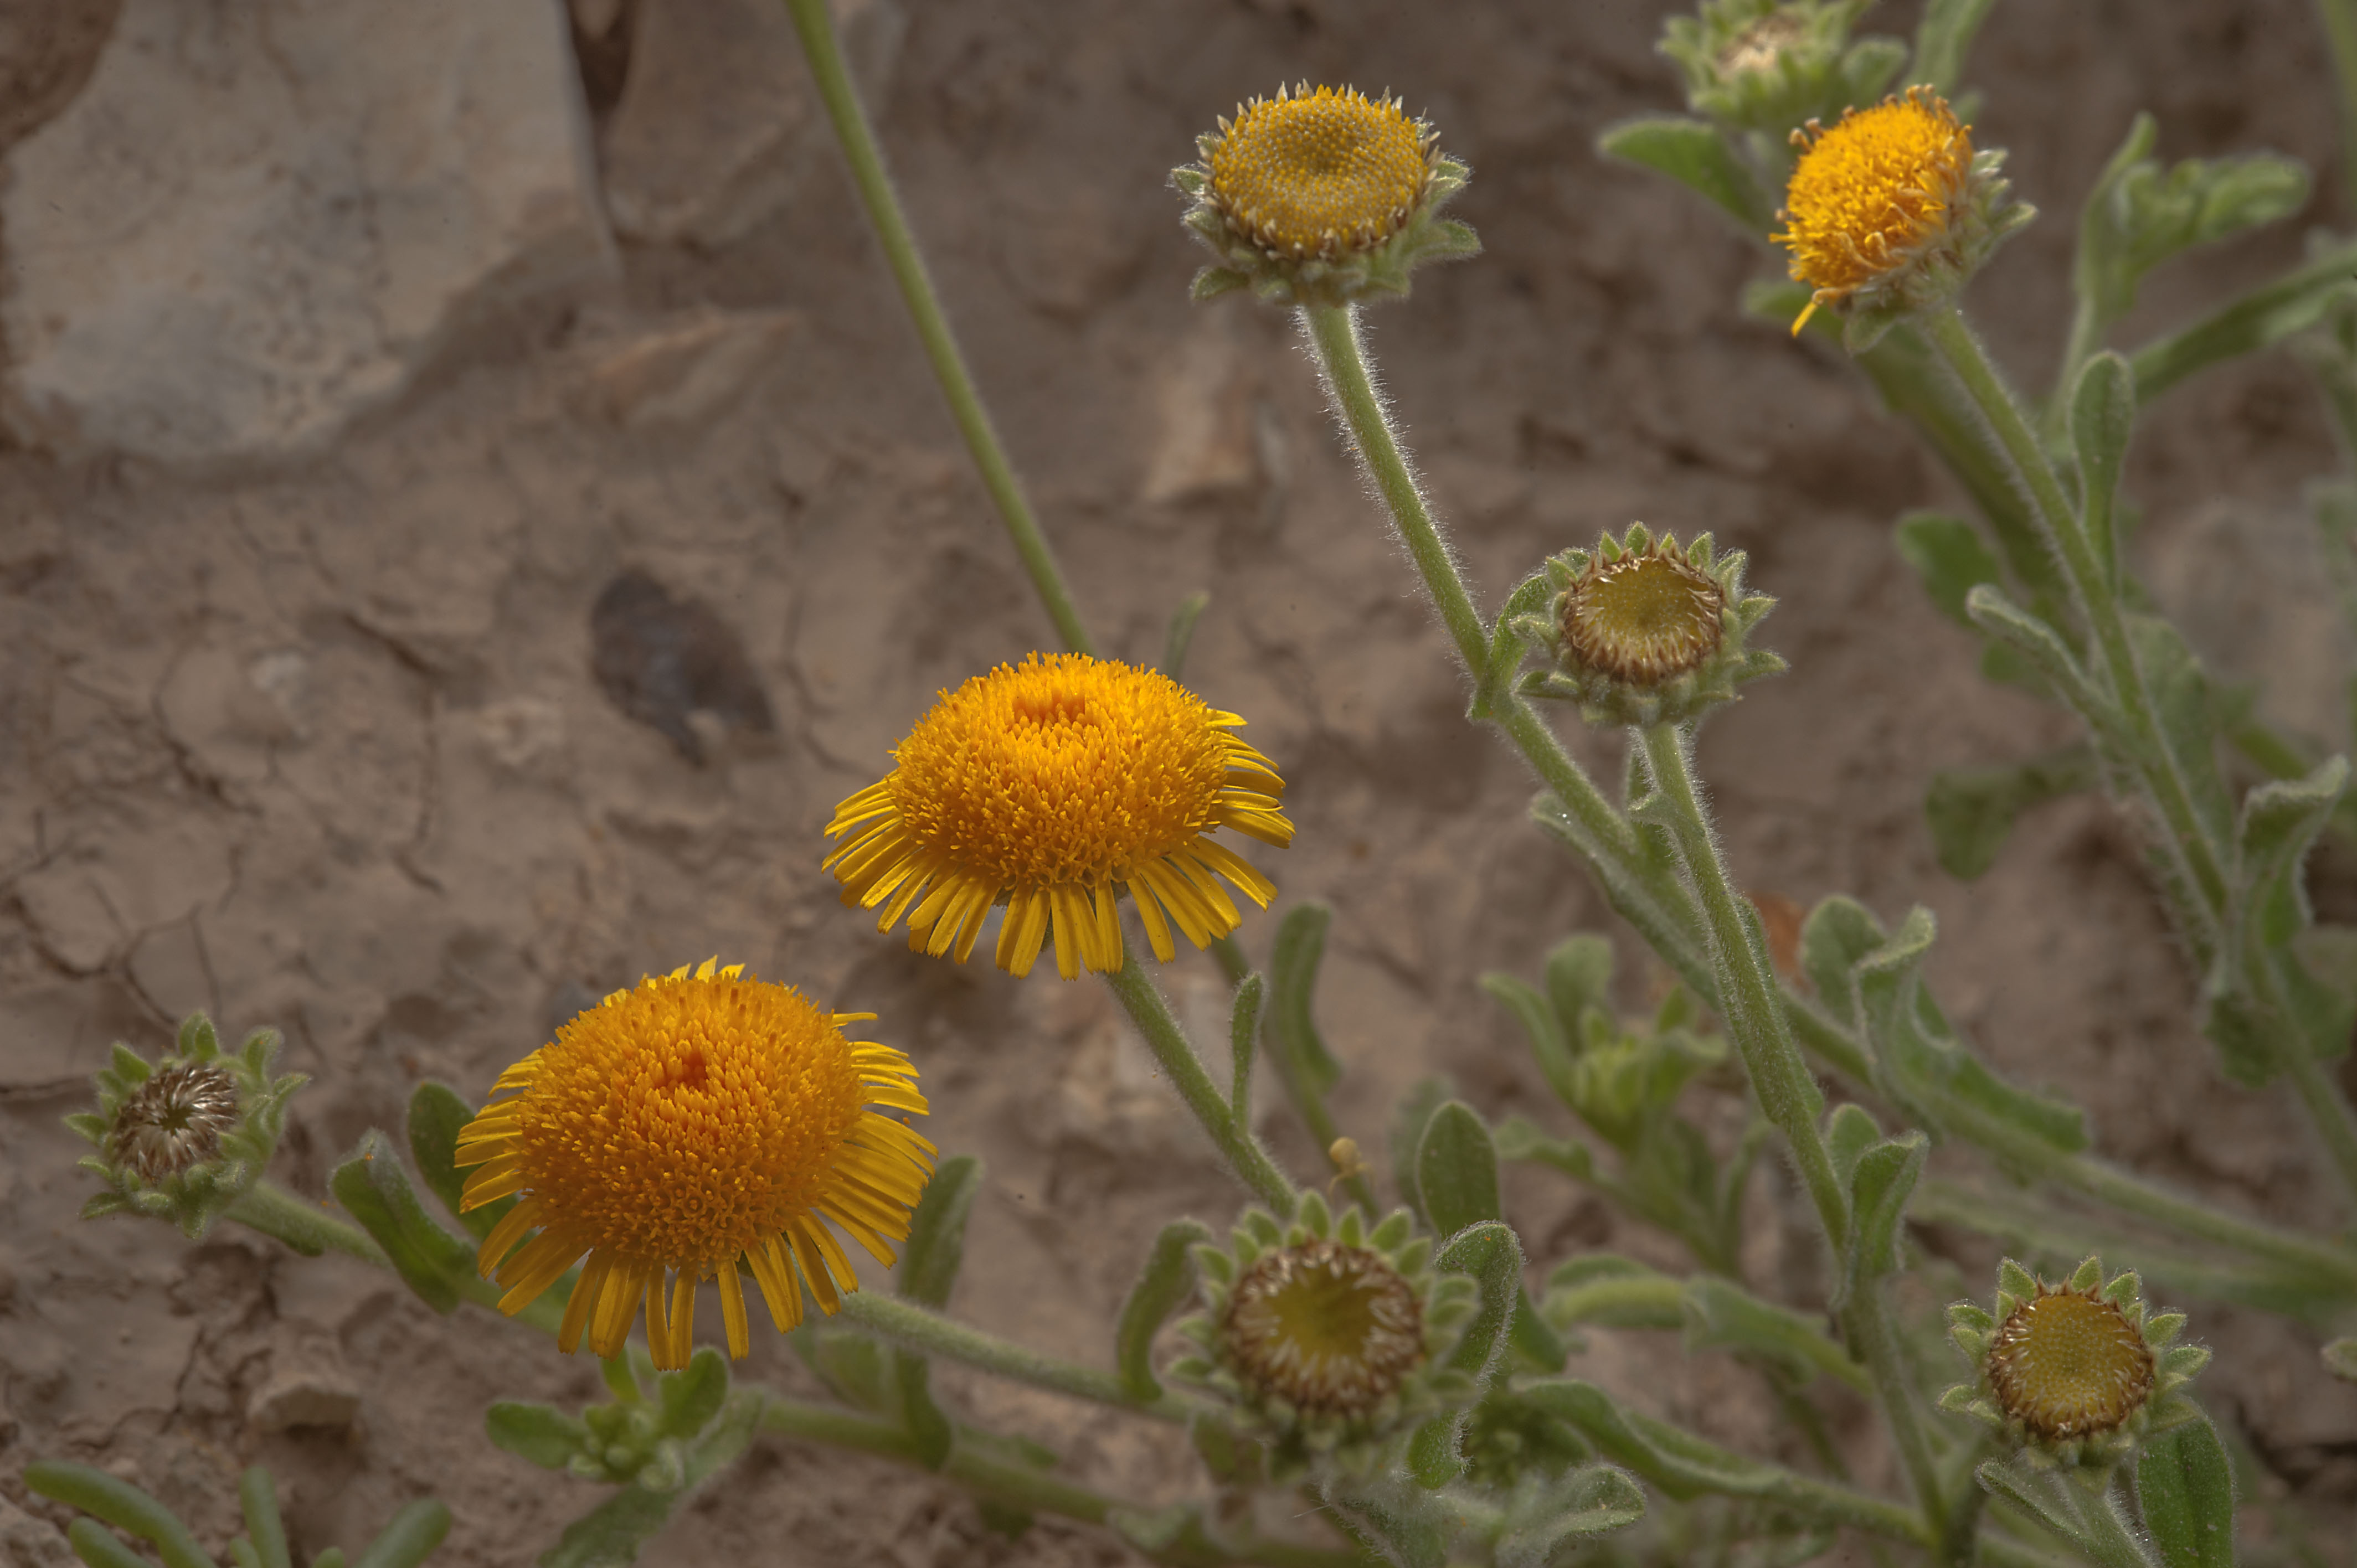 Photo 1697 25 Yellow Daisy Like Flowers Of Pulicaria Guestii In